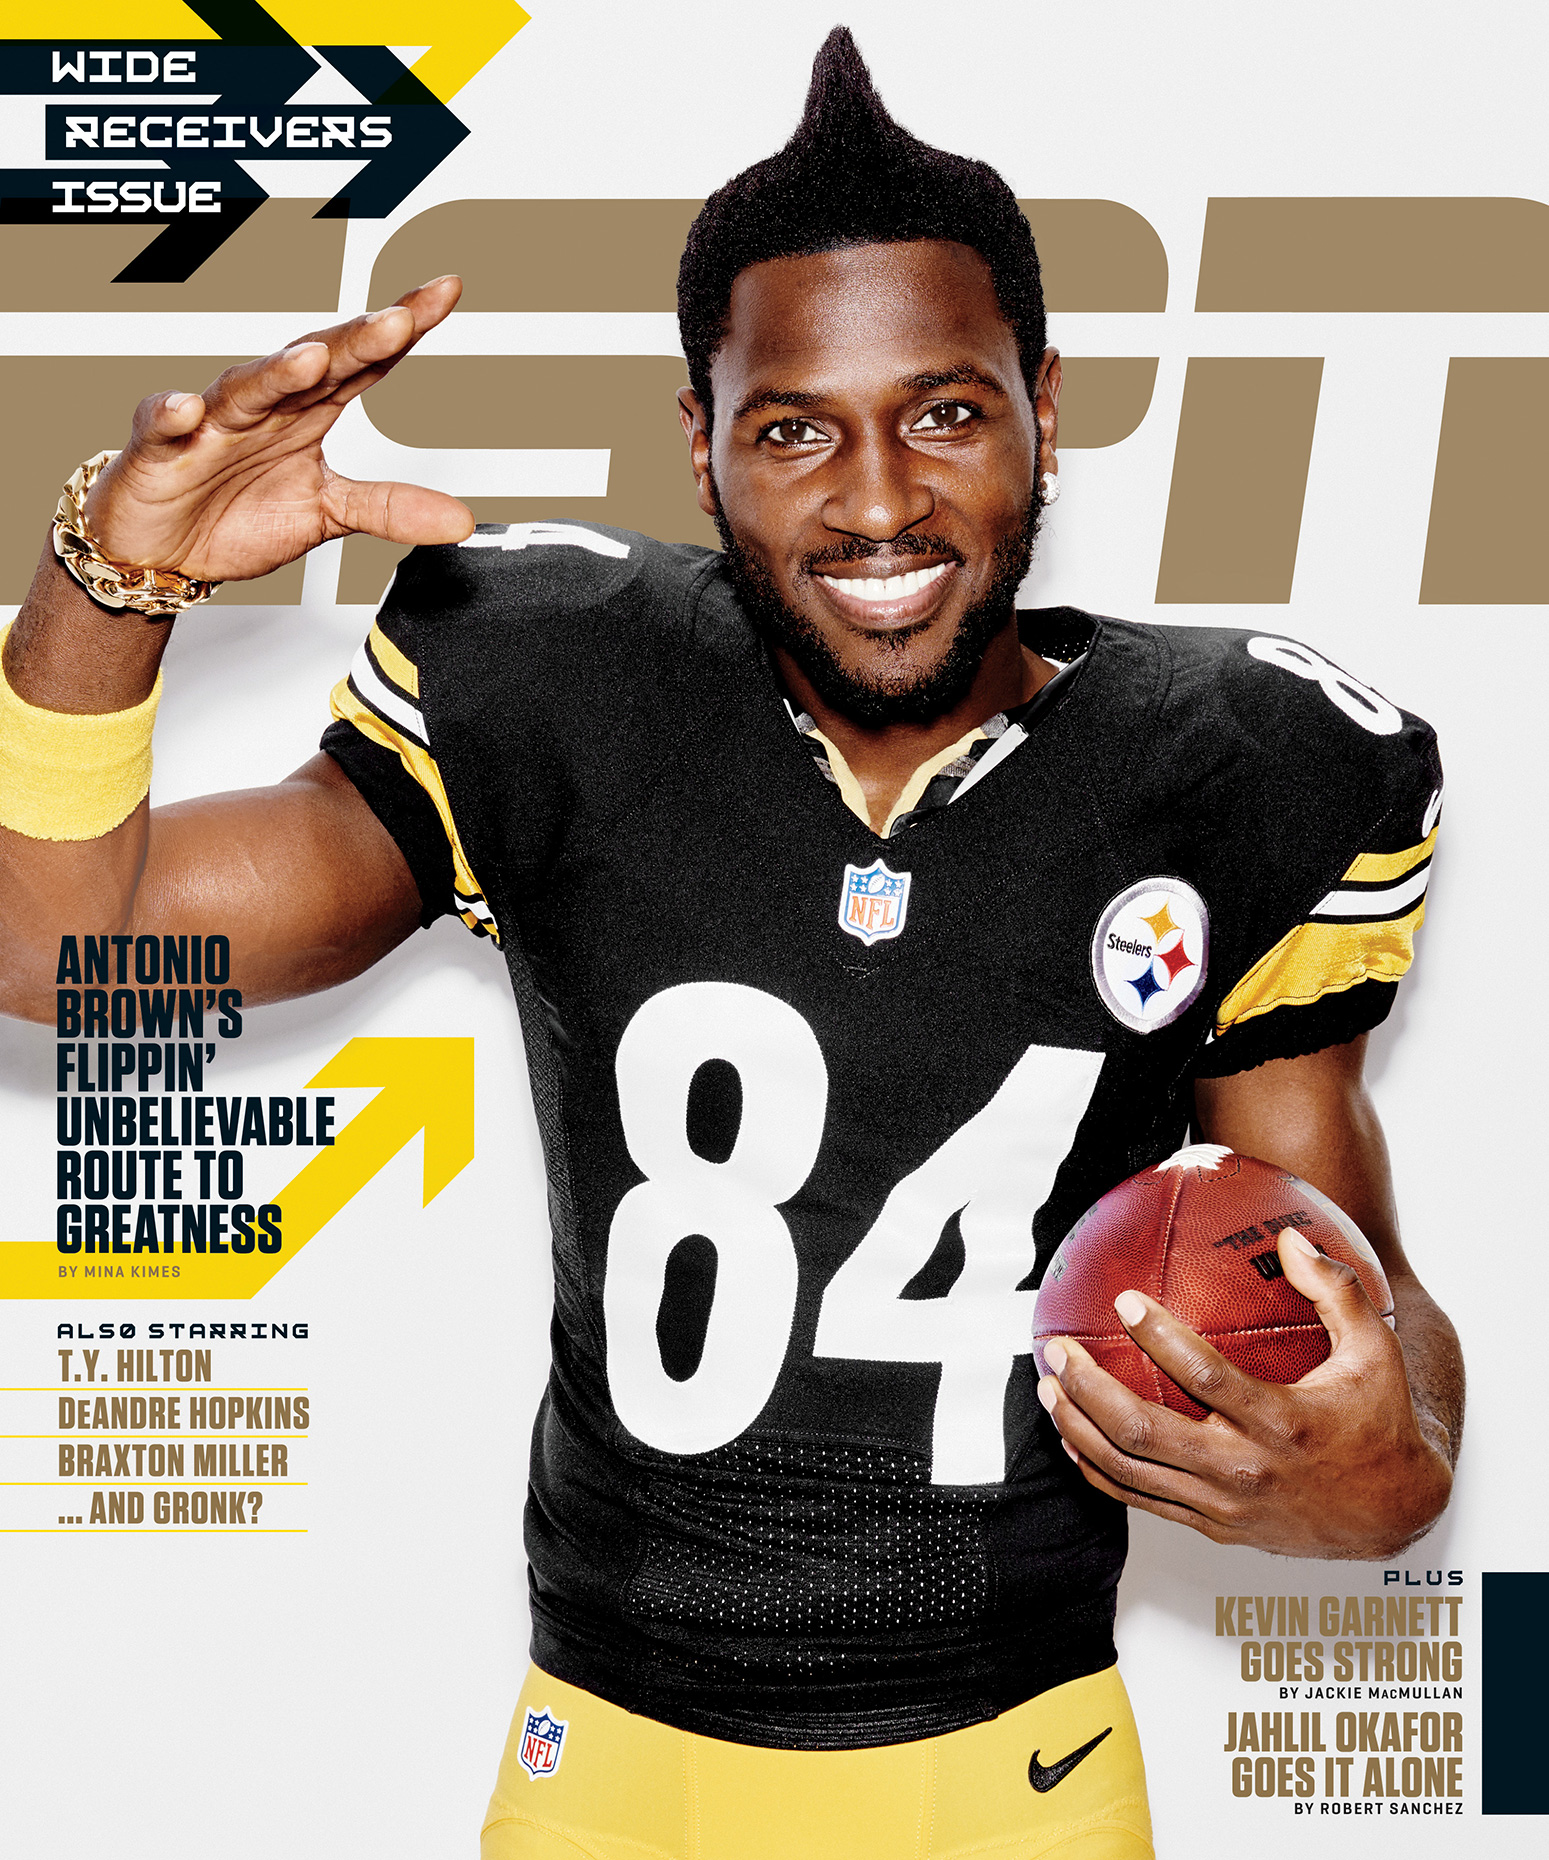 espn_antoniobrown